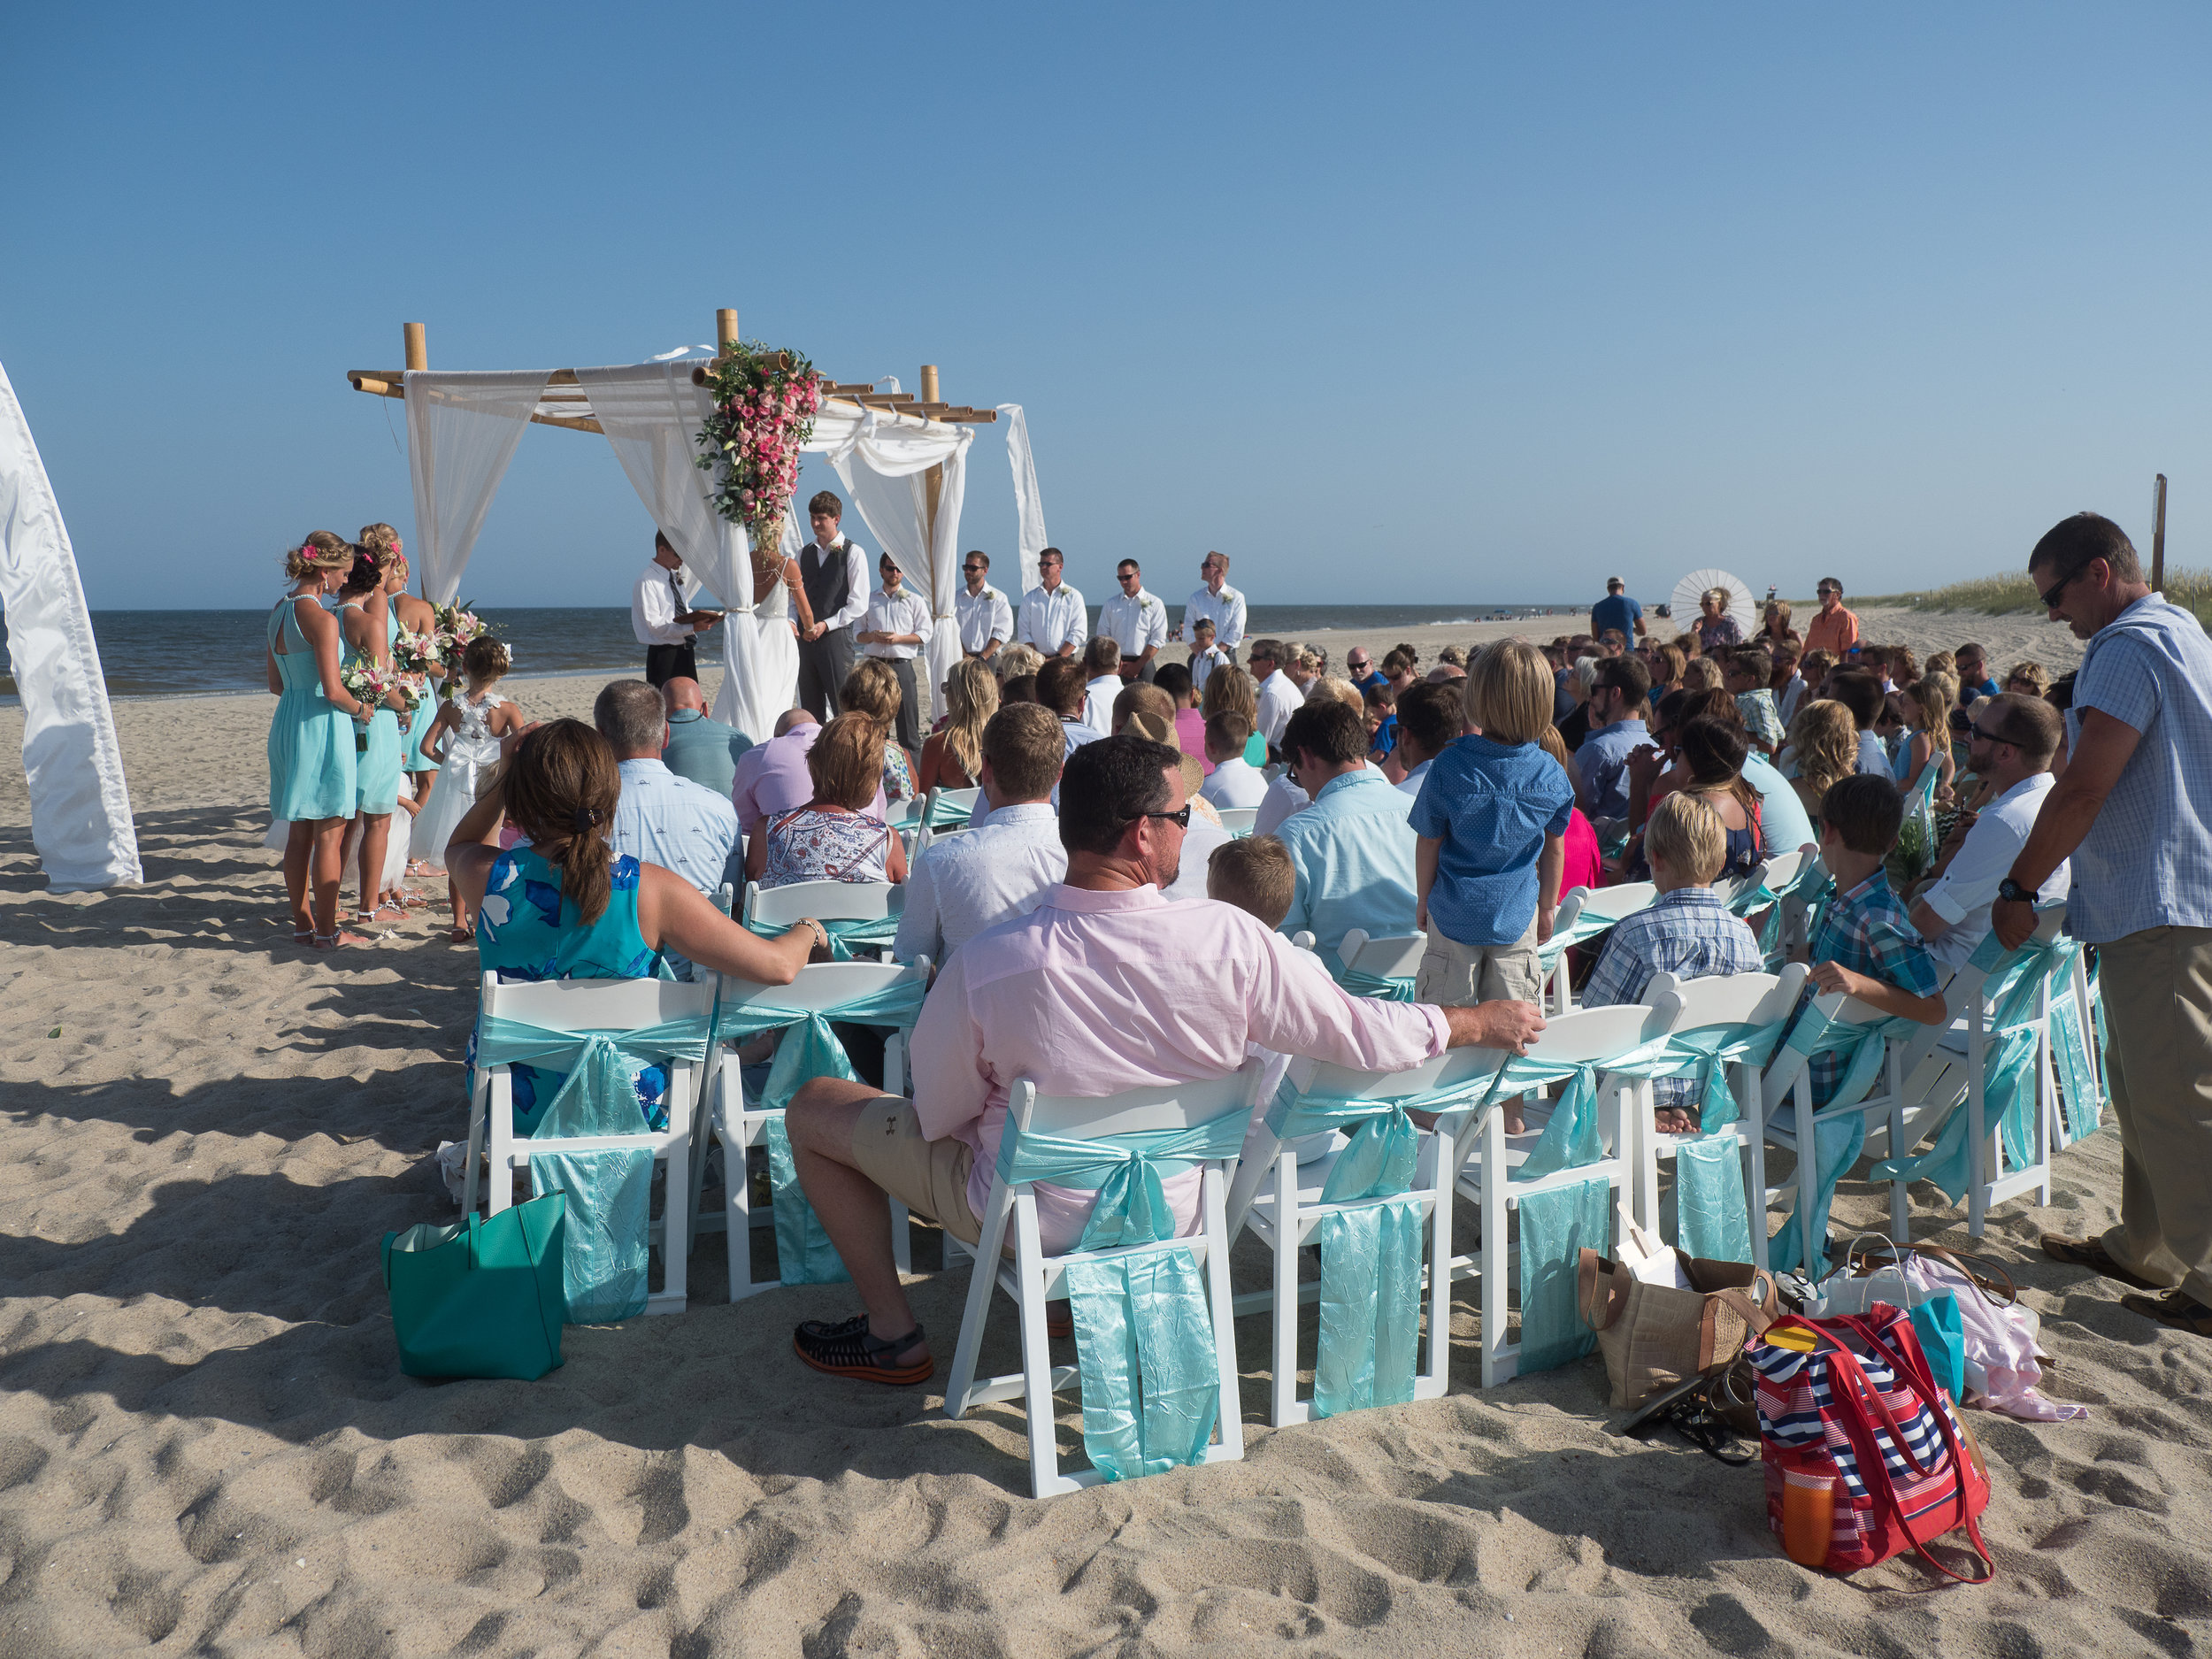 - Fort Fisher, NC beach ceremony in progress. Bride and groom under bamboo arbor and ocean in the background. Billy Beach Photography.